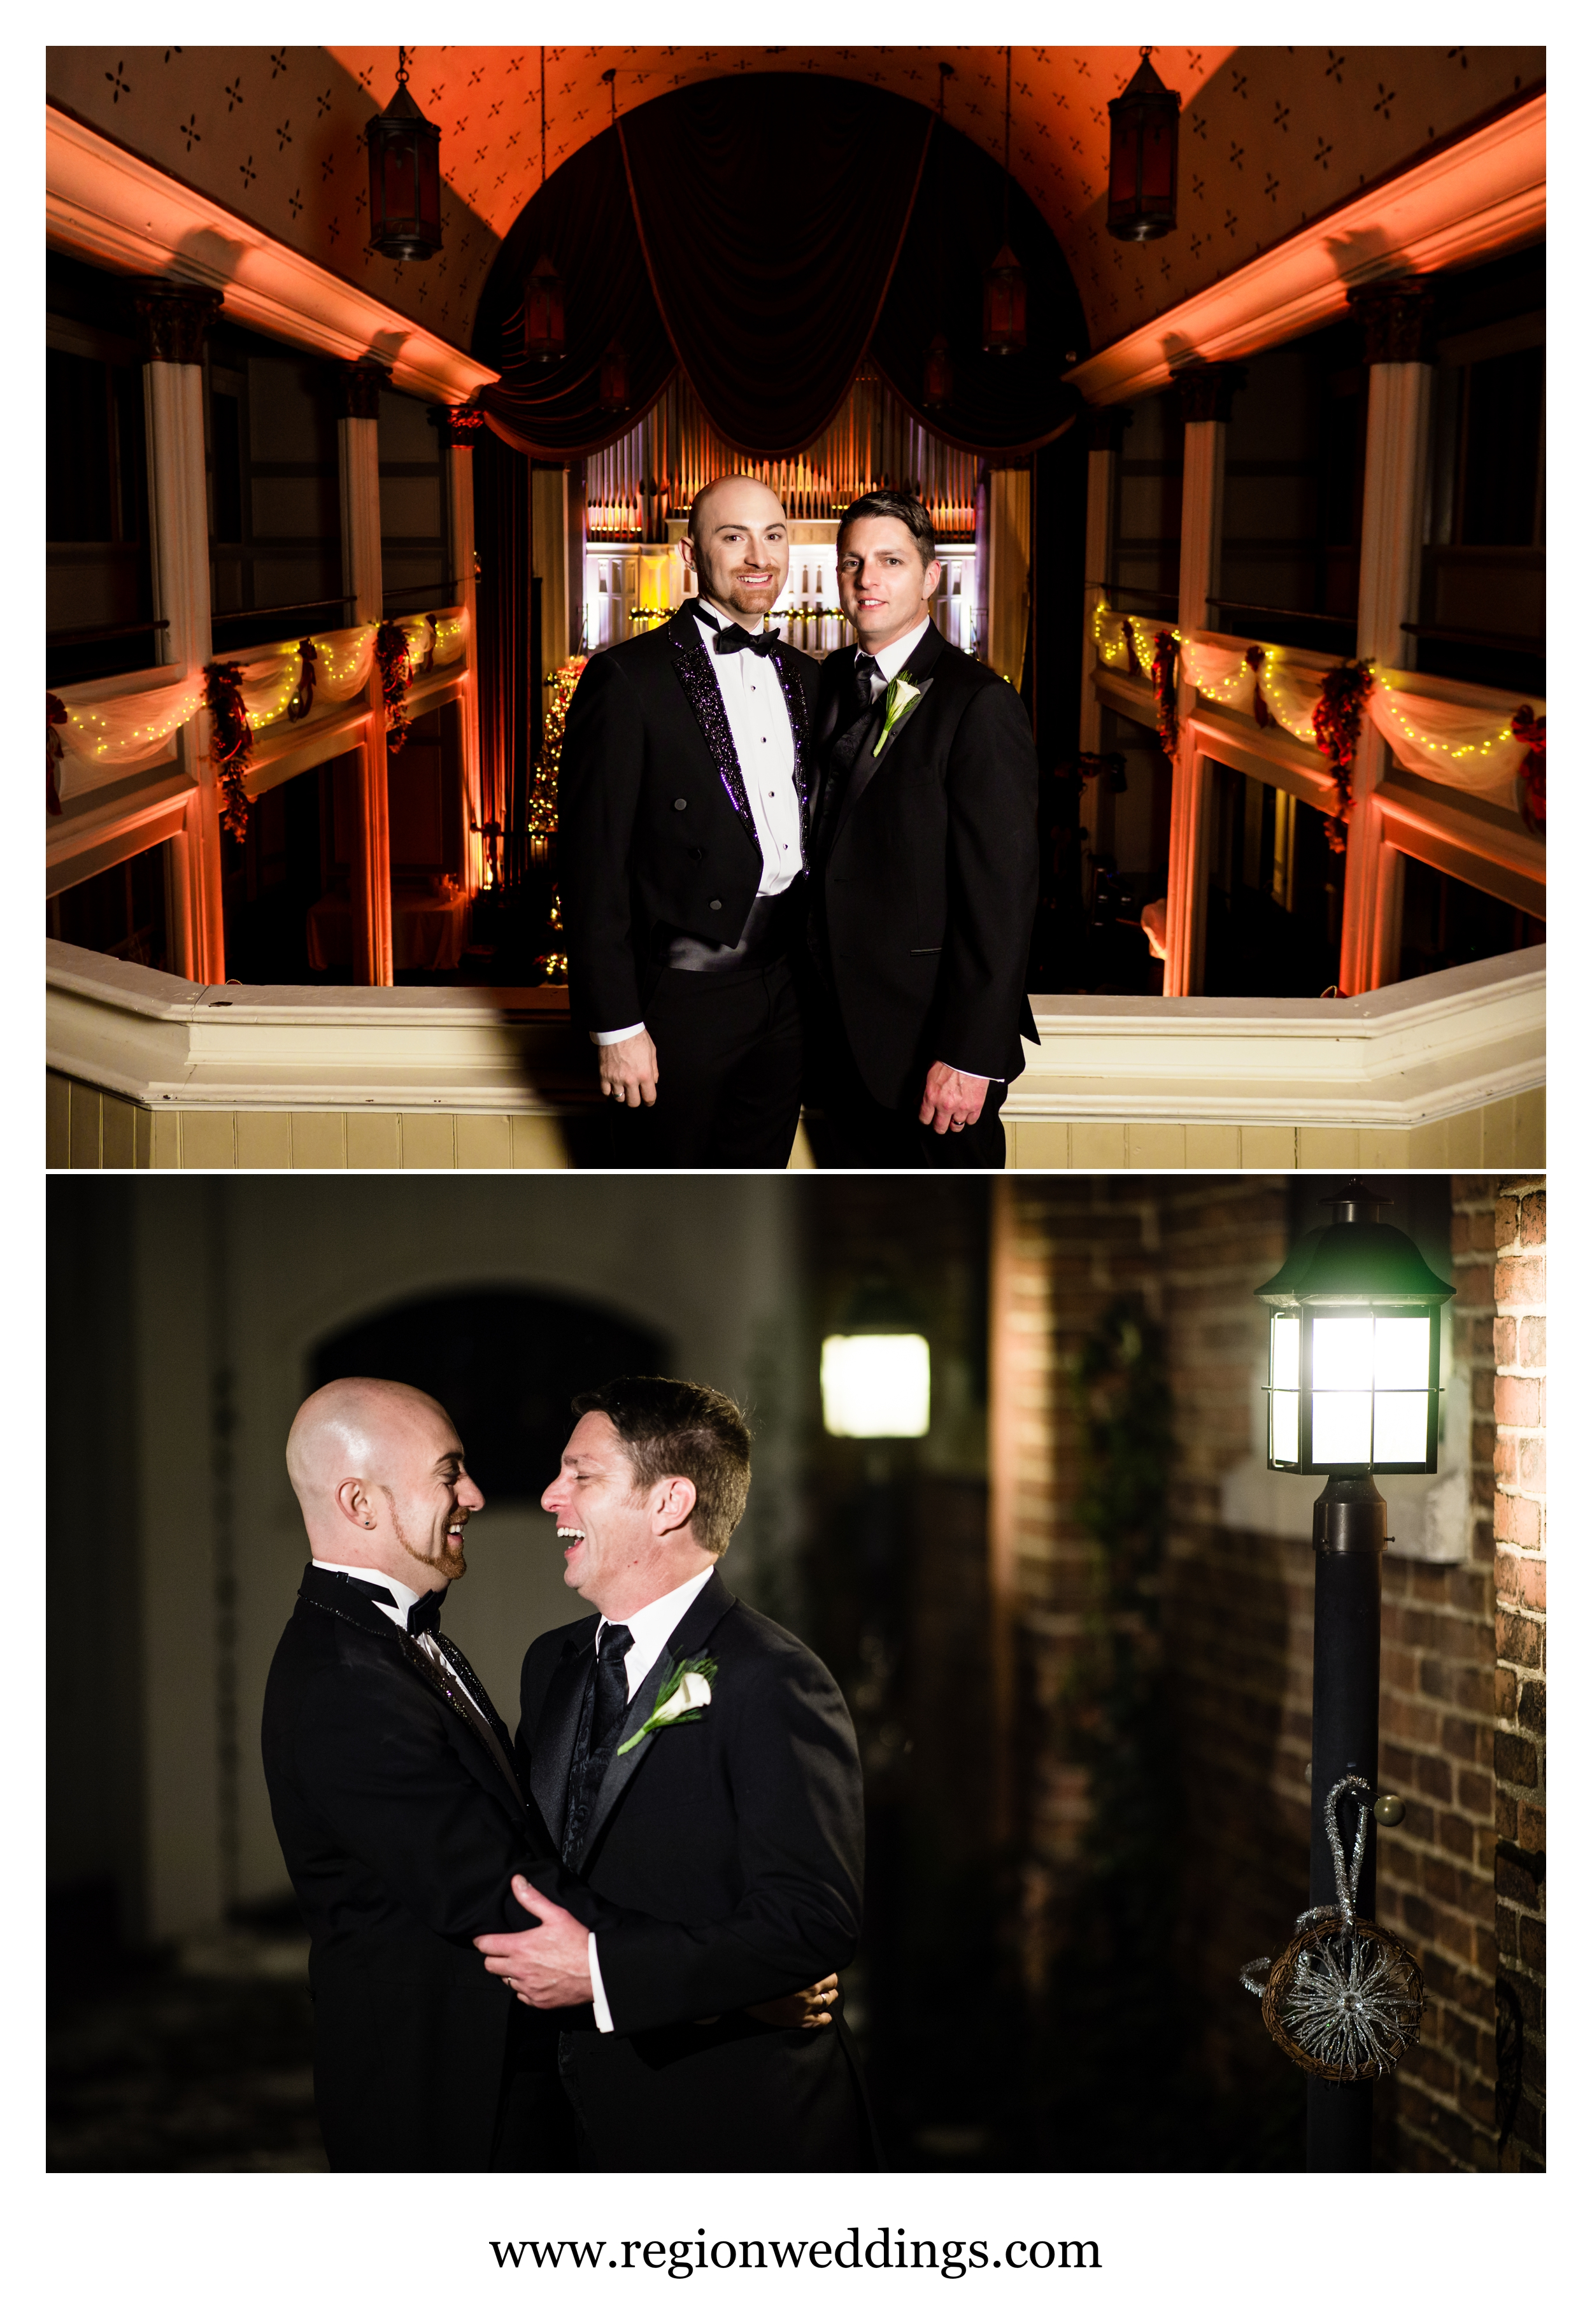 Two grooms celebrate at The Uptown Center in Michigan City.